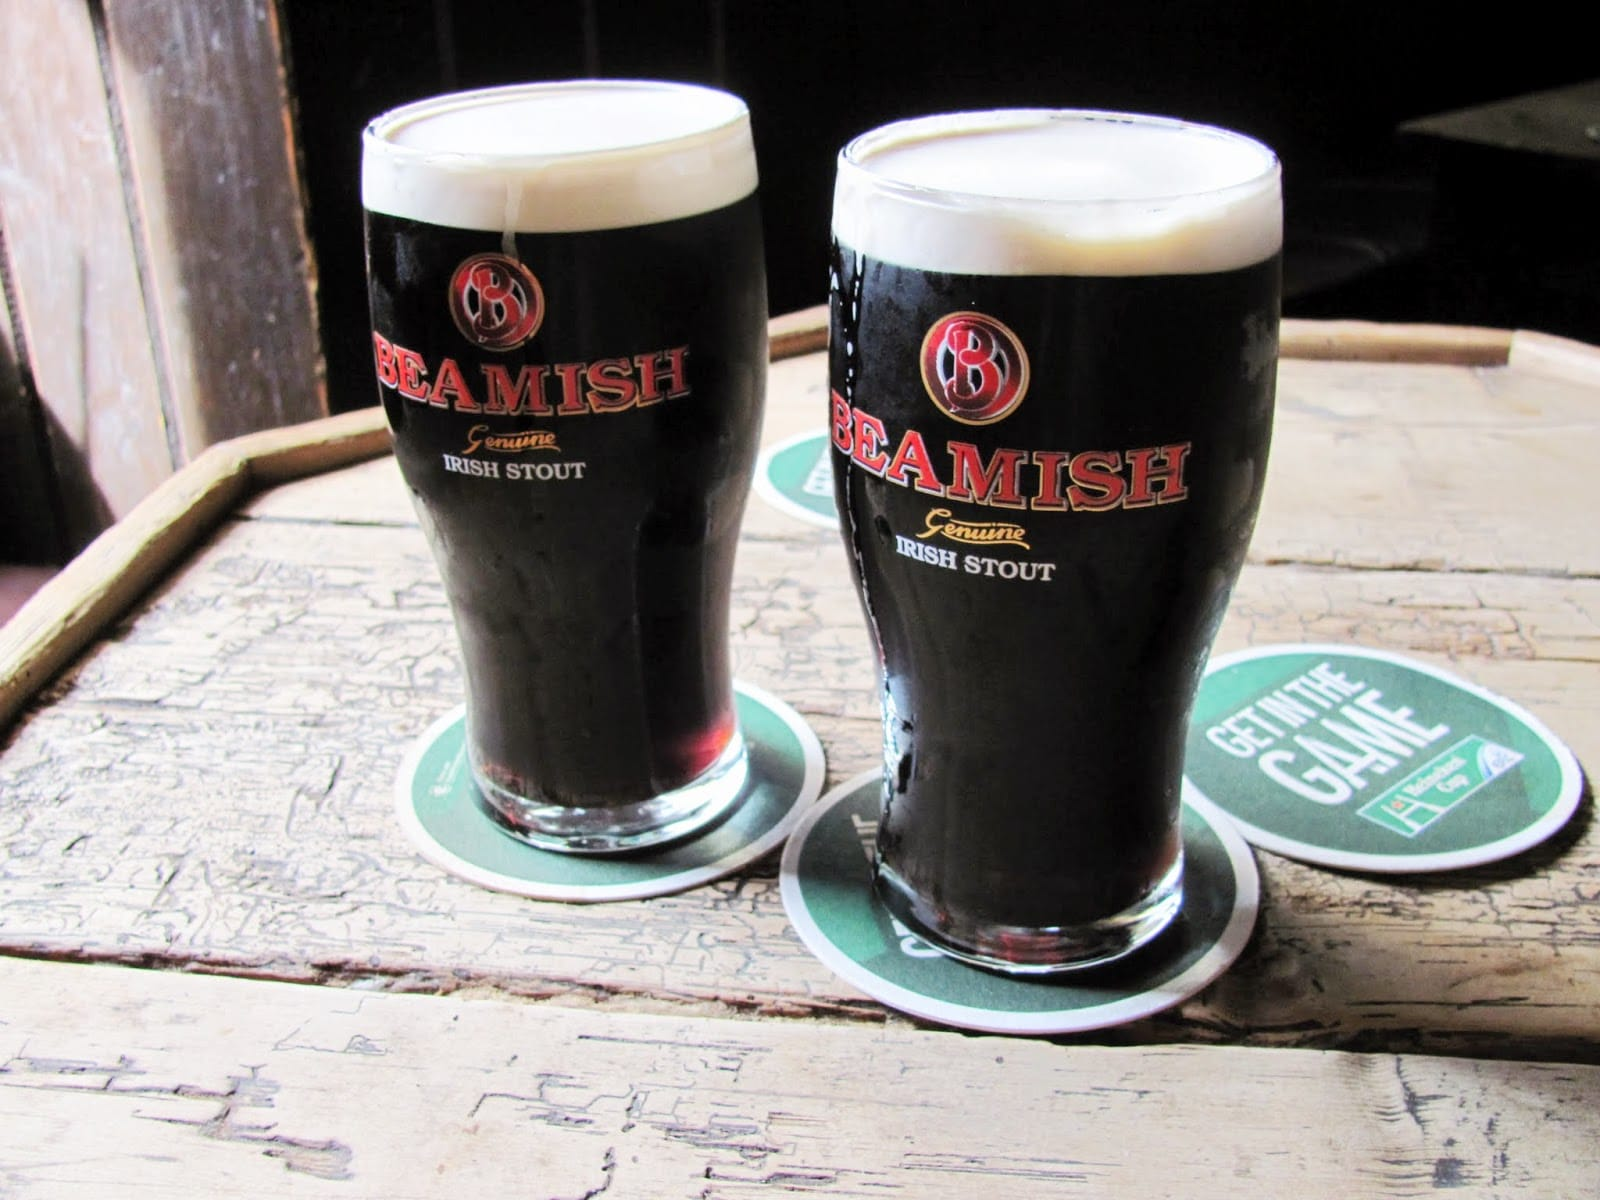 Beamish is one of the best Irish alcoholic drinks ever.